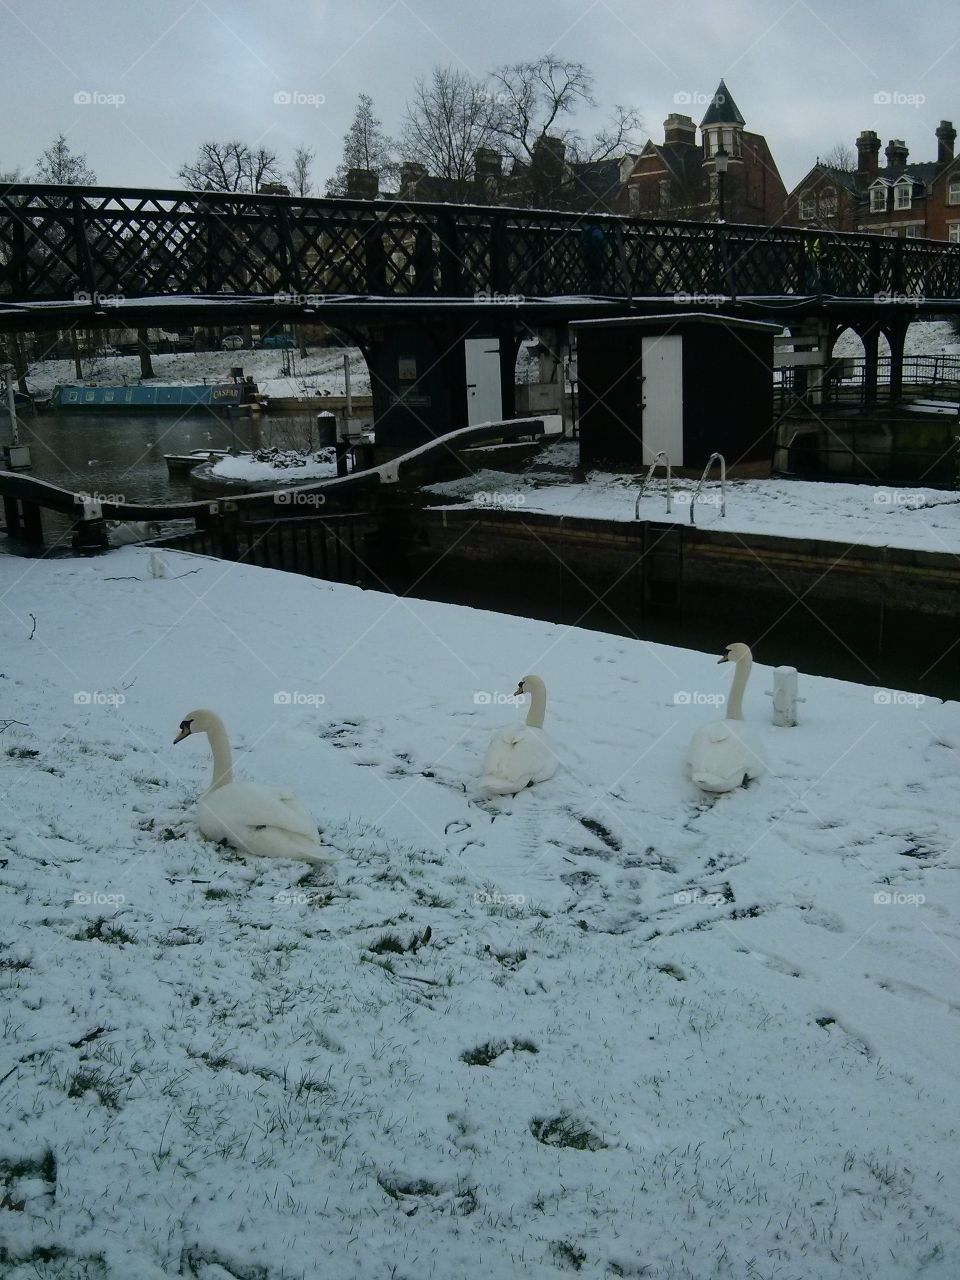 Swans on the snow